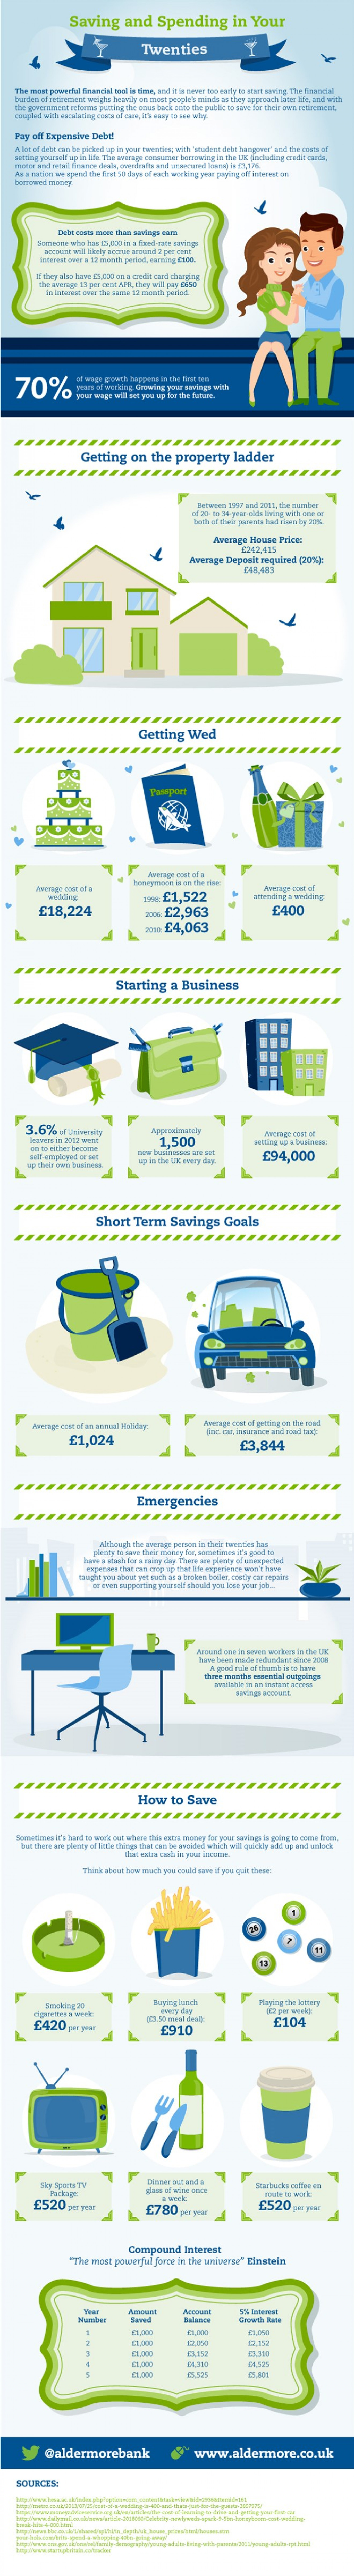 Saving Money in your Twenties Infographic